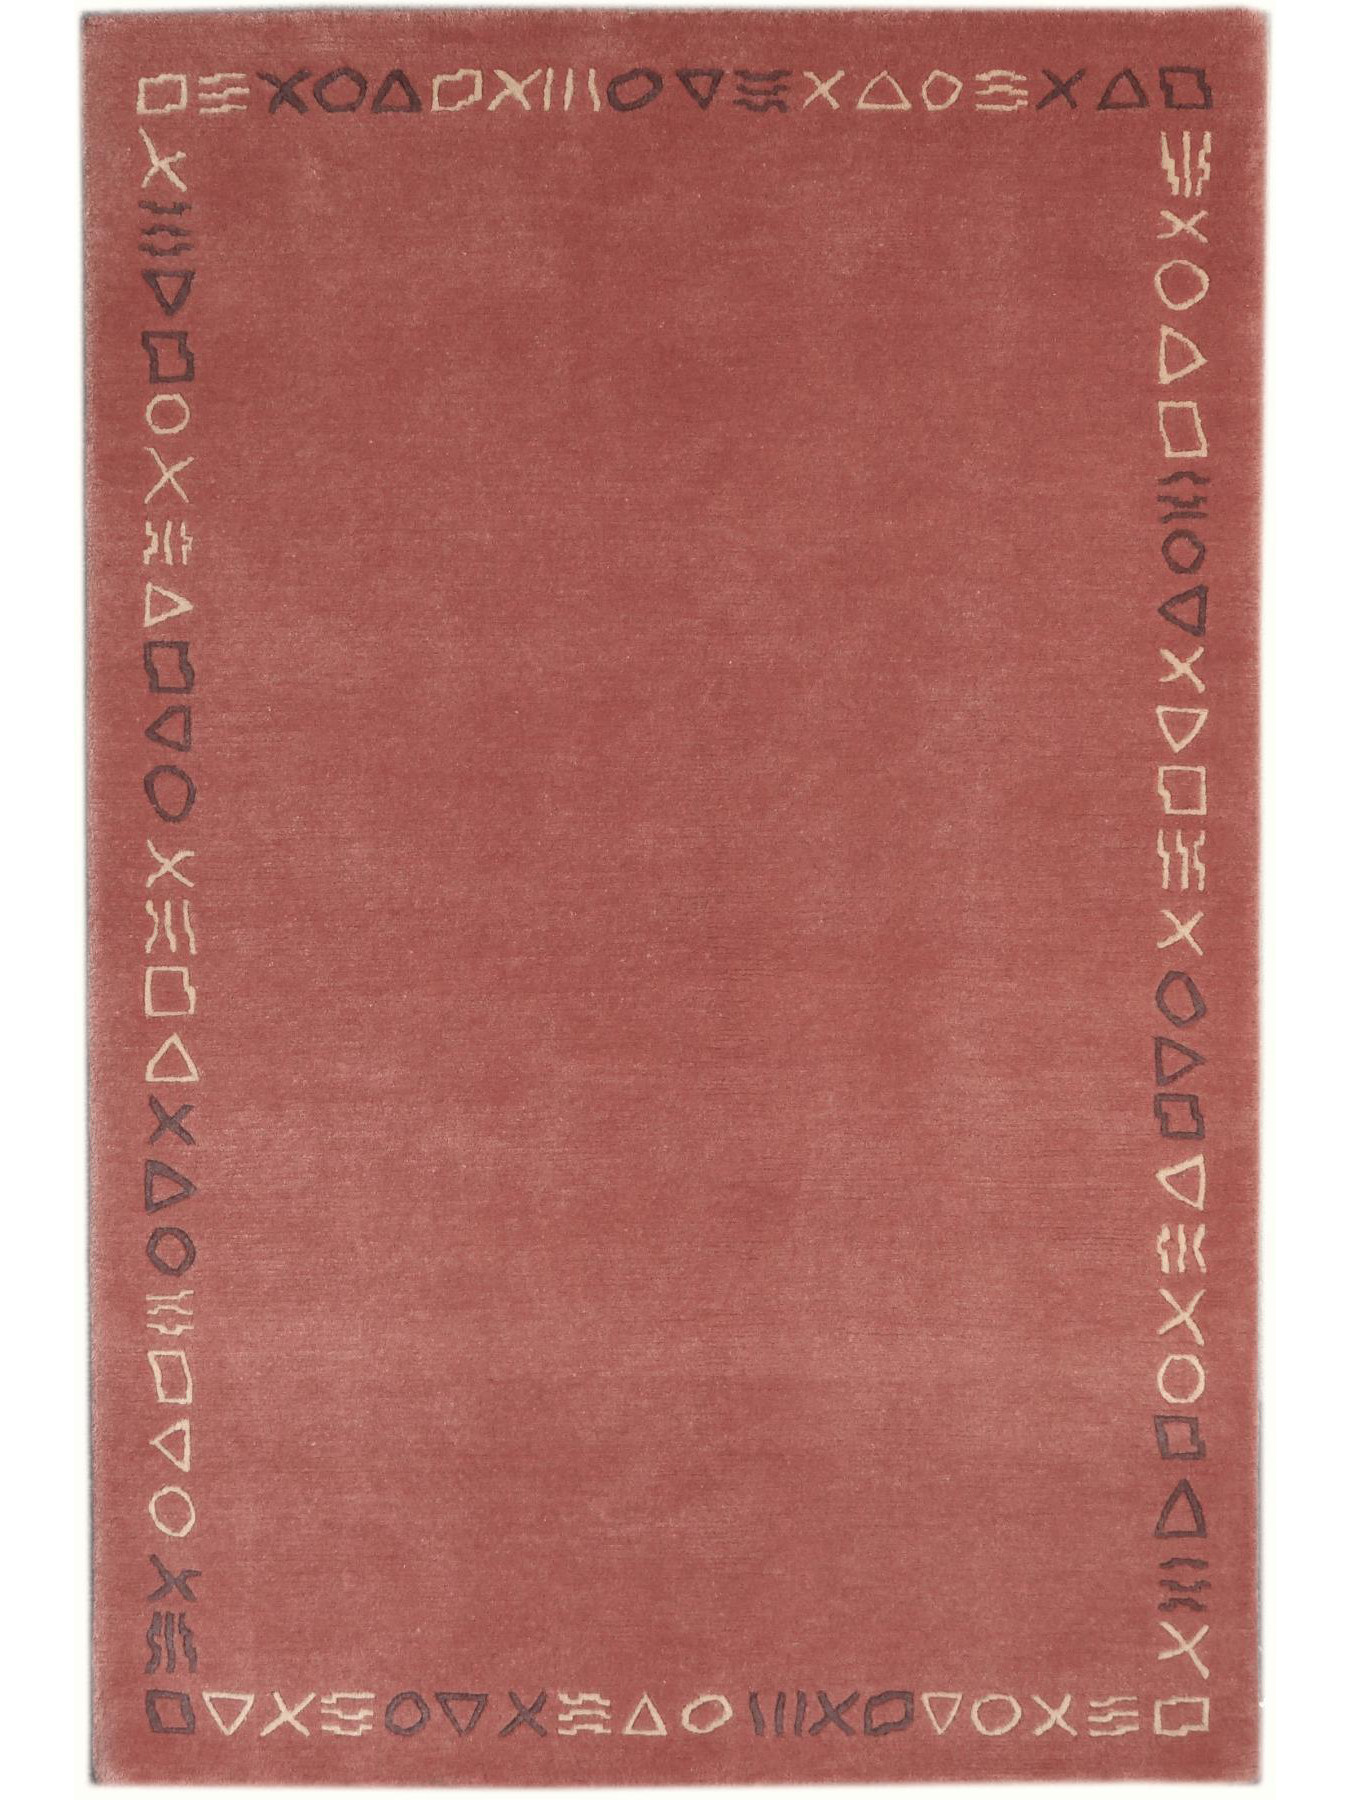 Carpets with borders - SCRIPT 1 - 2500